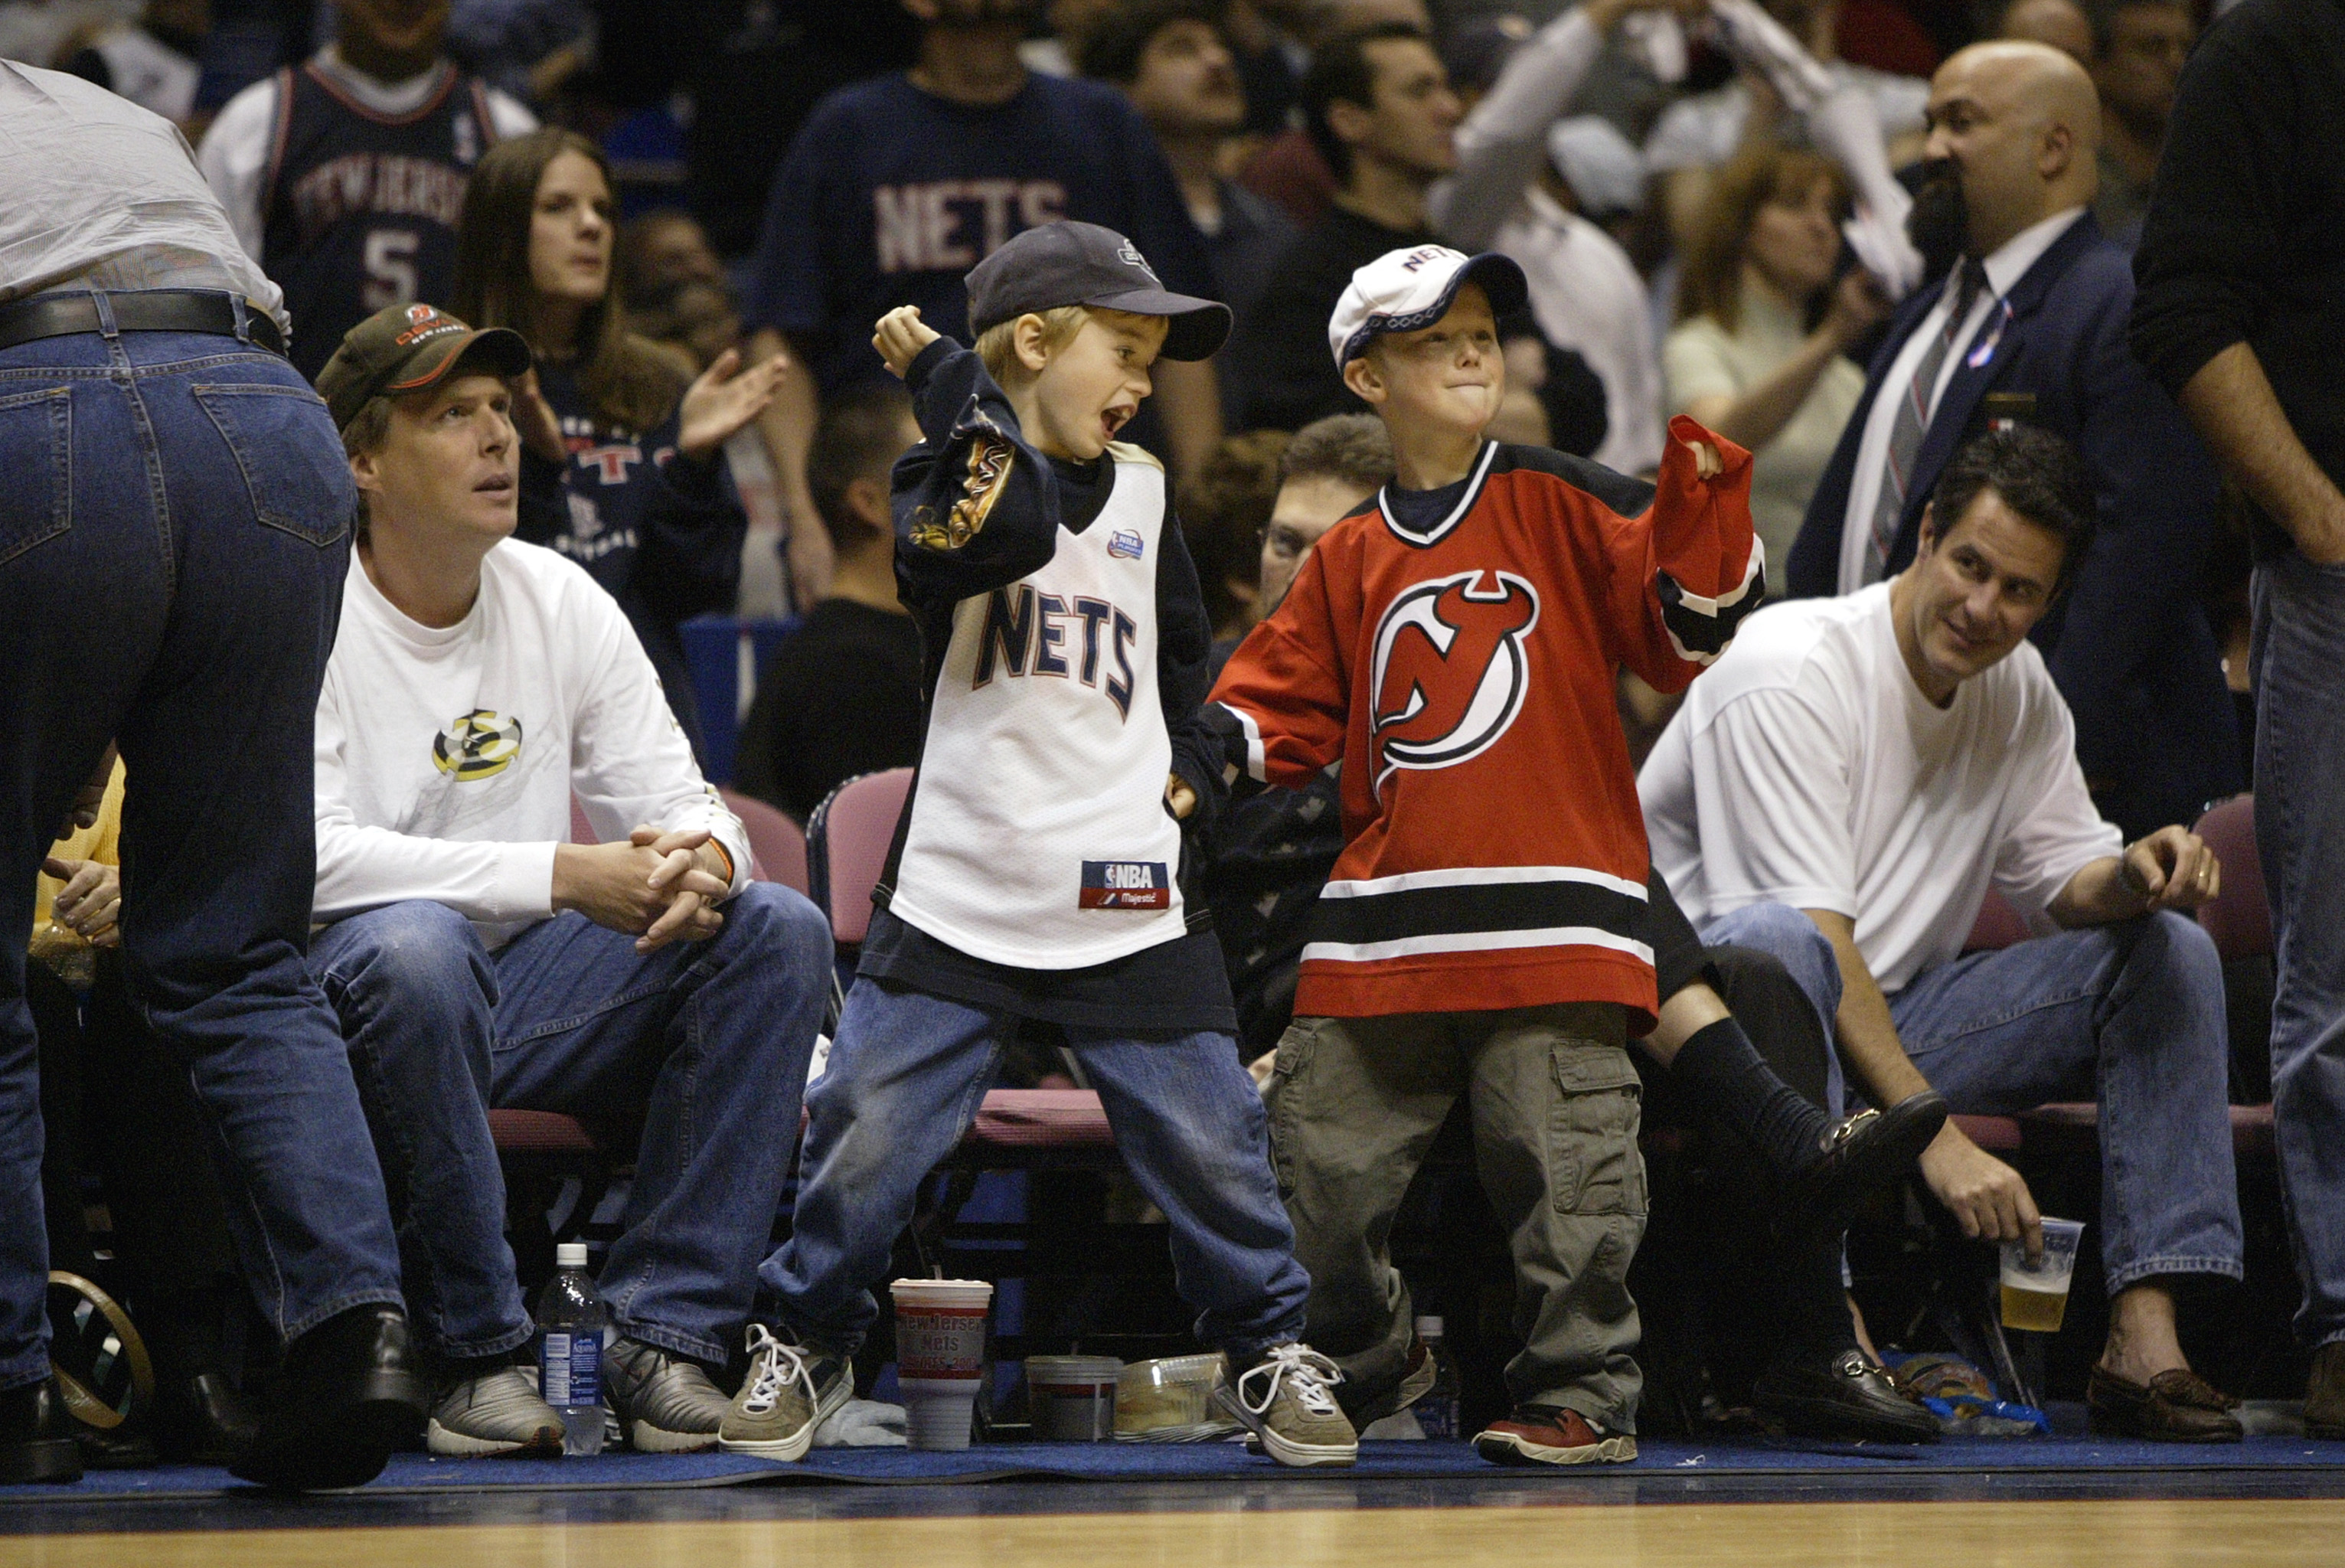 EAST RUTHERFORD, NJ - MAY 24:  Young New Jersey fans show support for the New Jersey Nets and the New Jersey Devils in Game four of the Eastern Conference Finals during the 2003 NBA Playoffs between the Nets and the Detroit Pistons at Continental Airlines